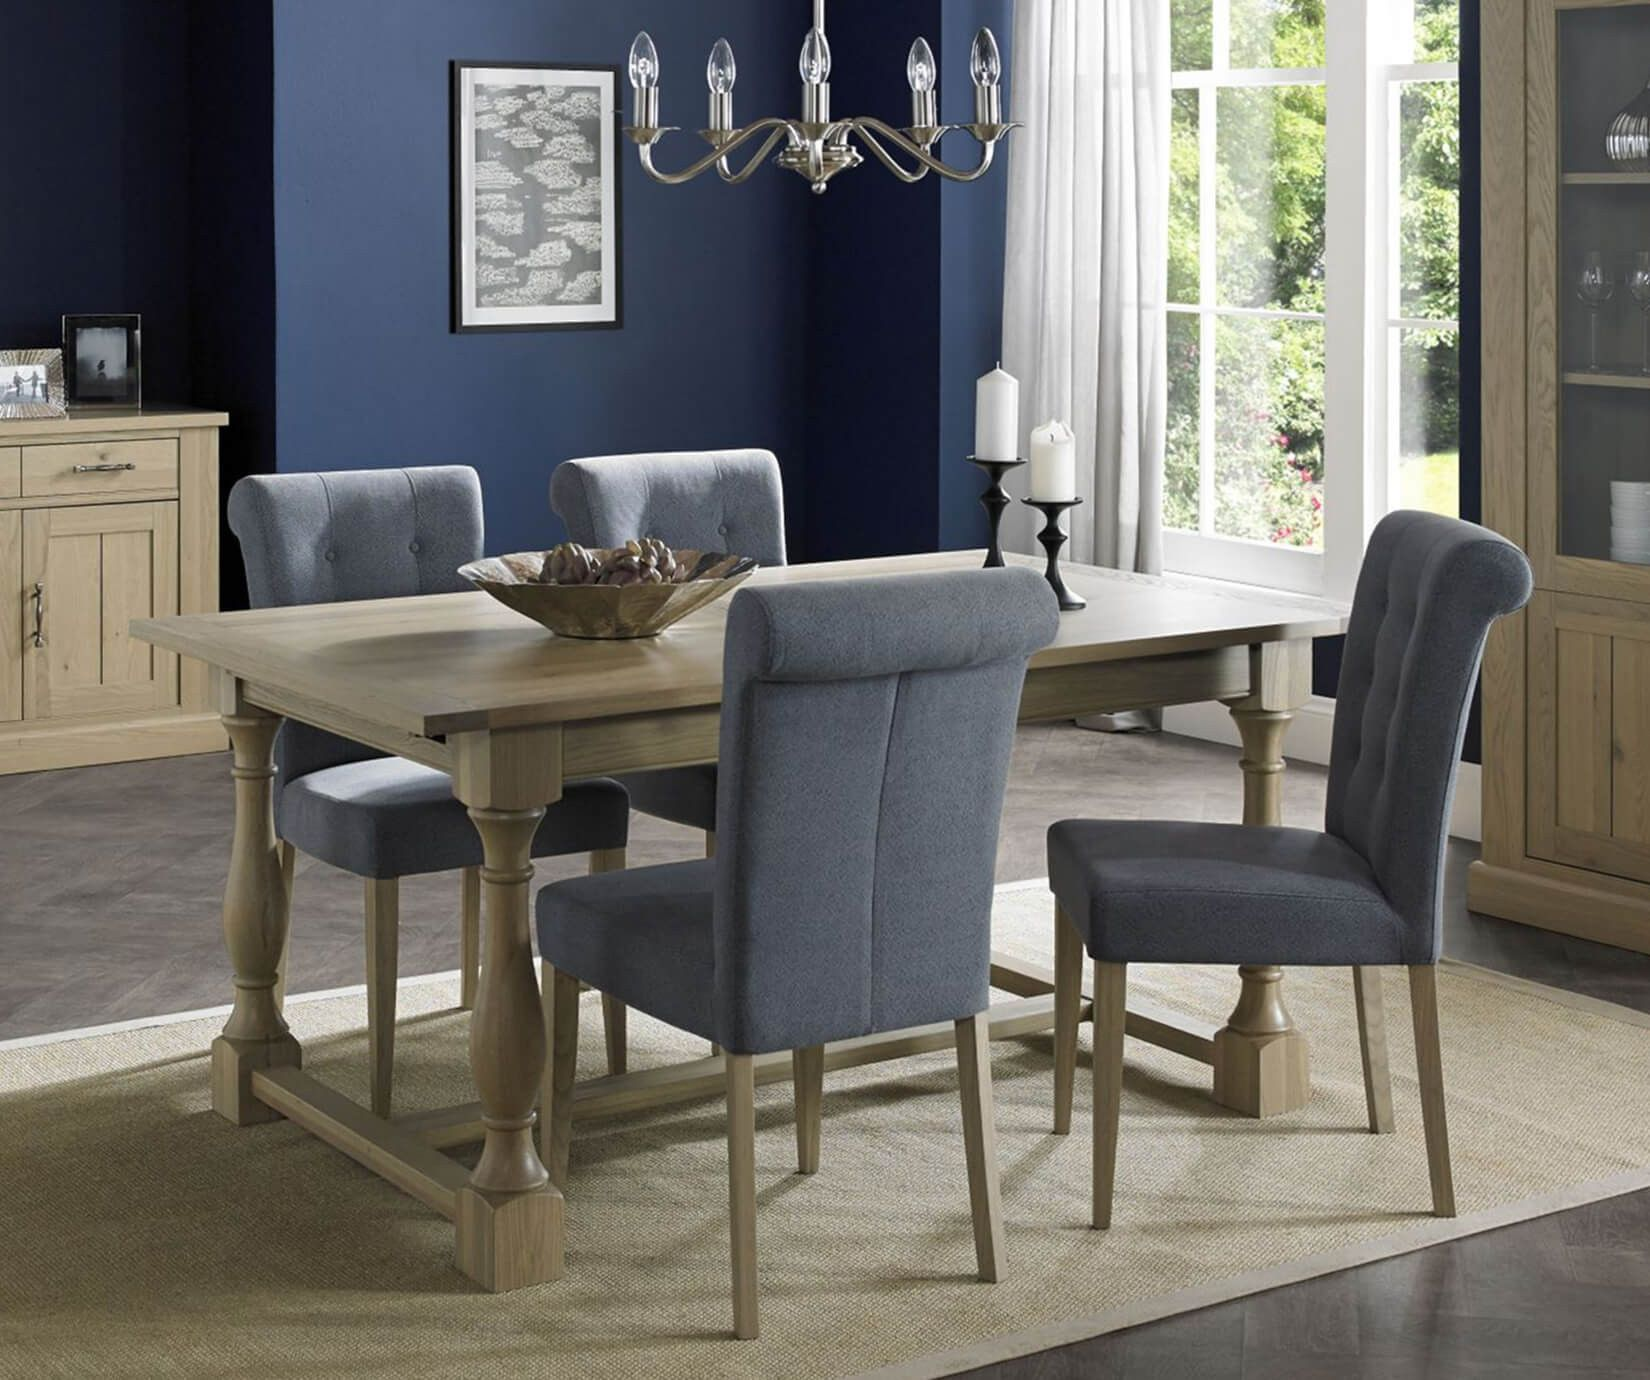 Bentley Designs Chartreuse Aged Oak Extension Dining Table ...